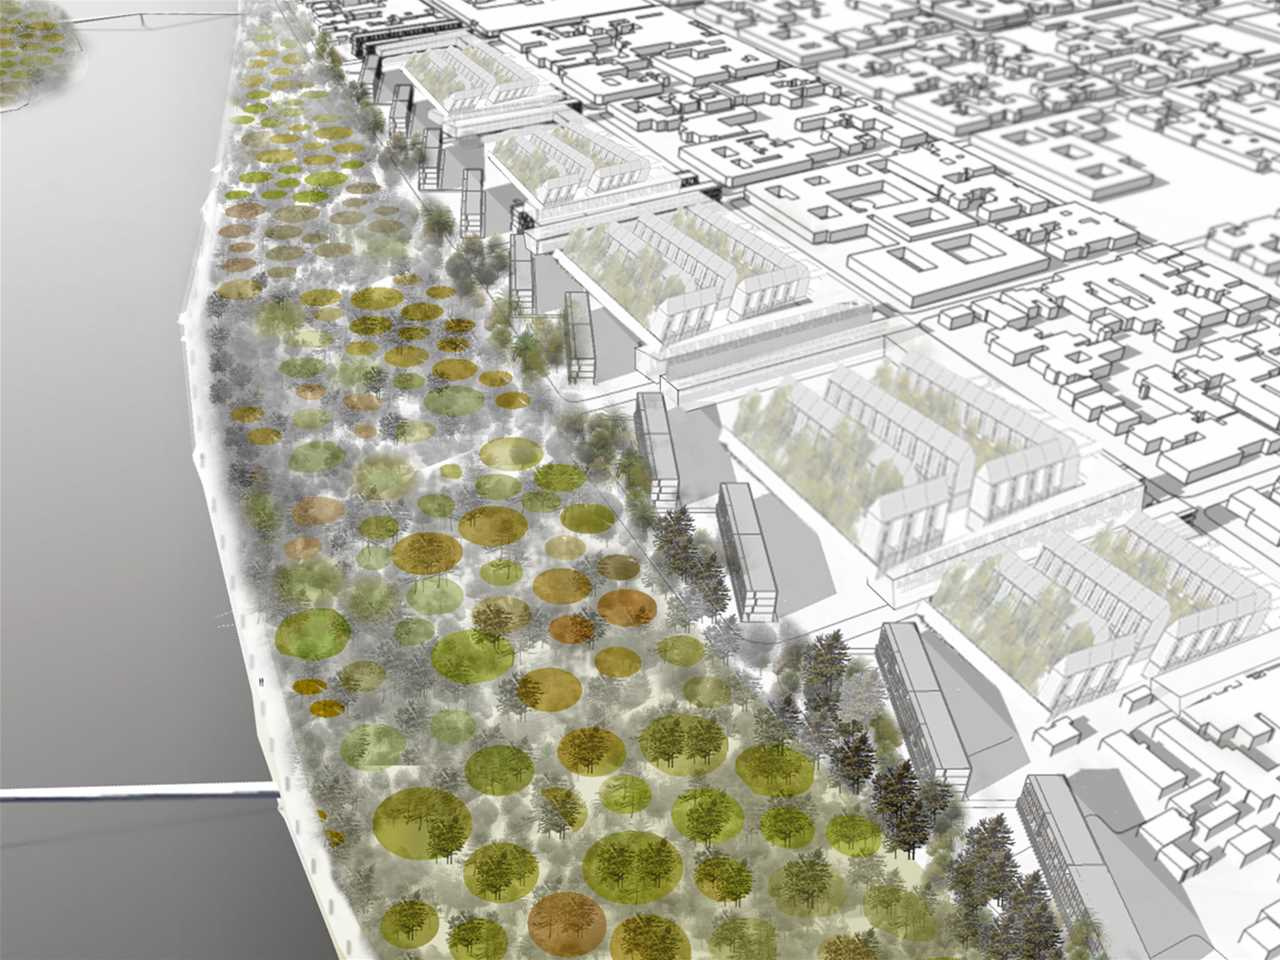 Global Finalist 2012: Sustainable post-tsunami reconstruction master plan, Constitucion, Chile